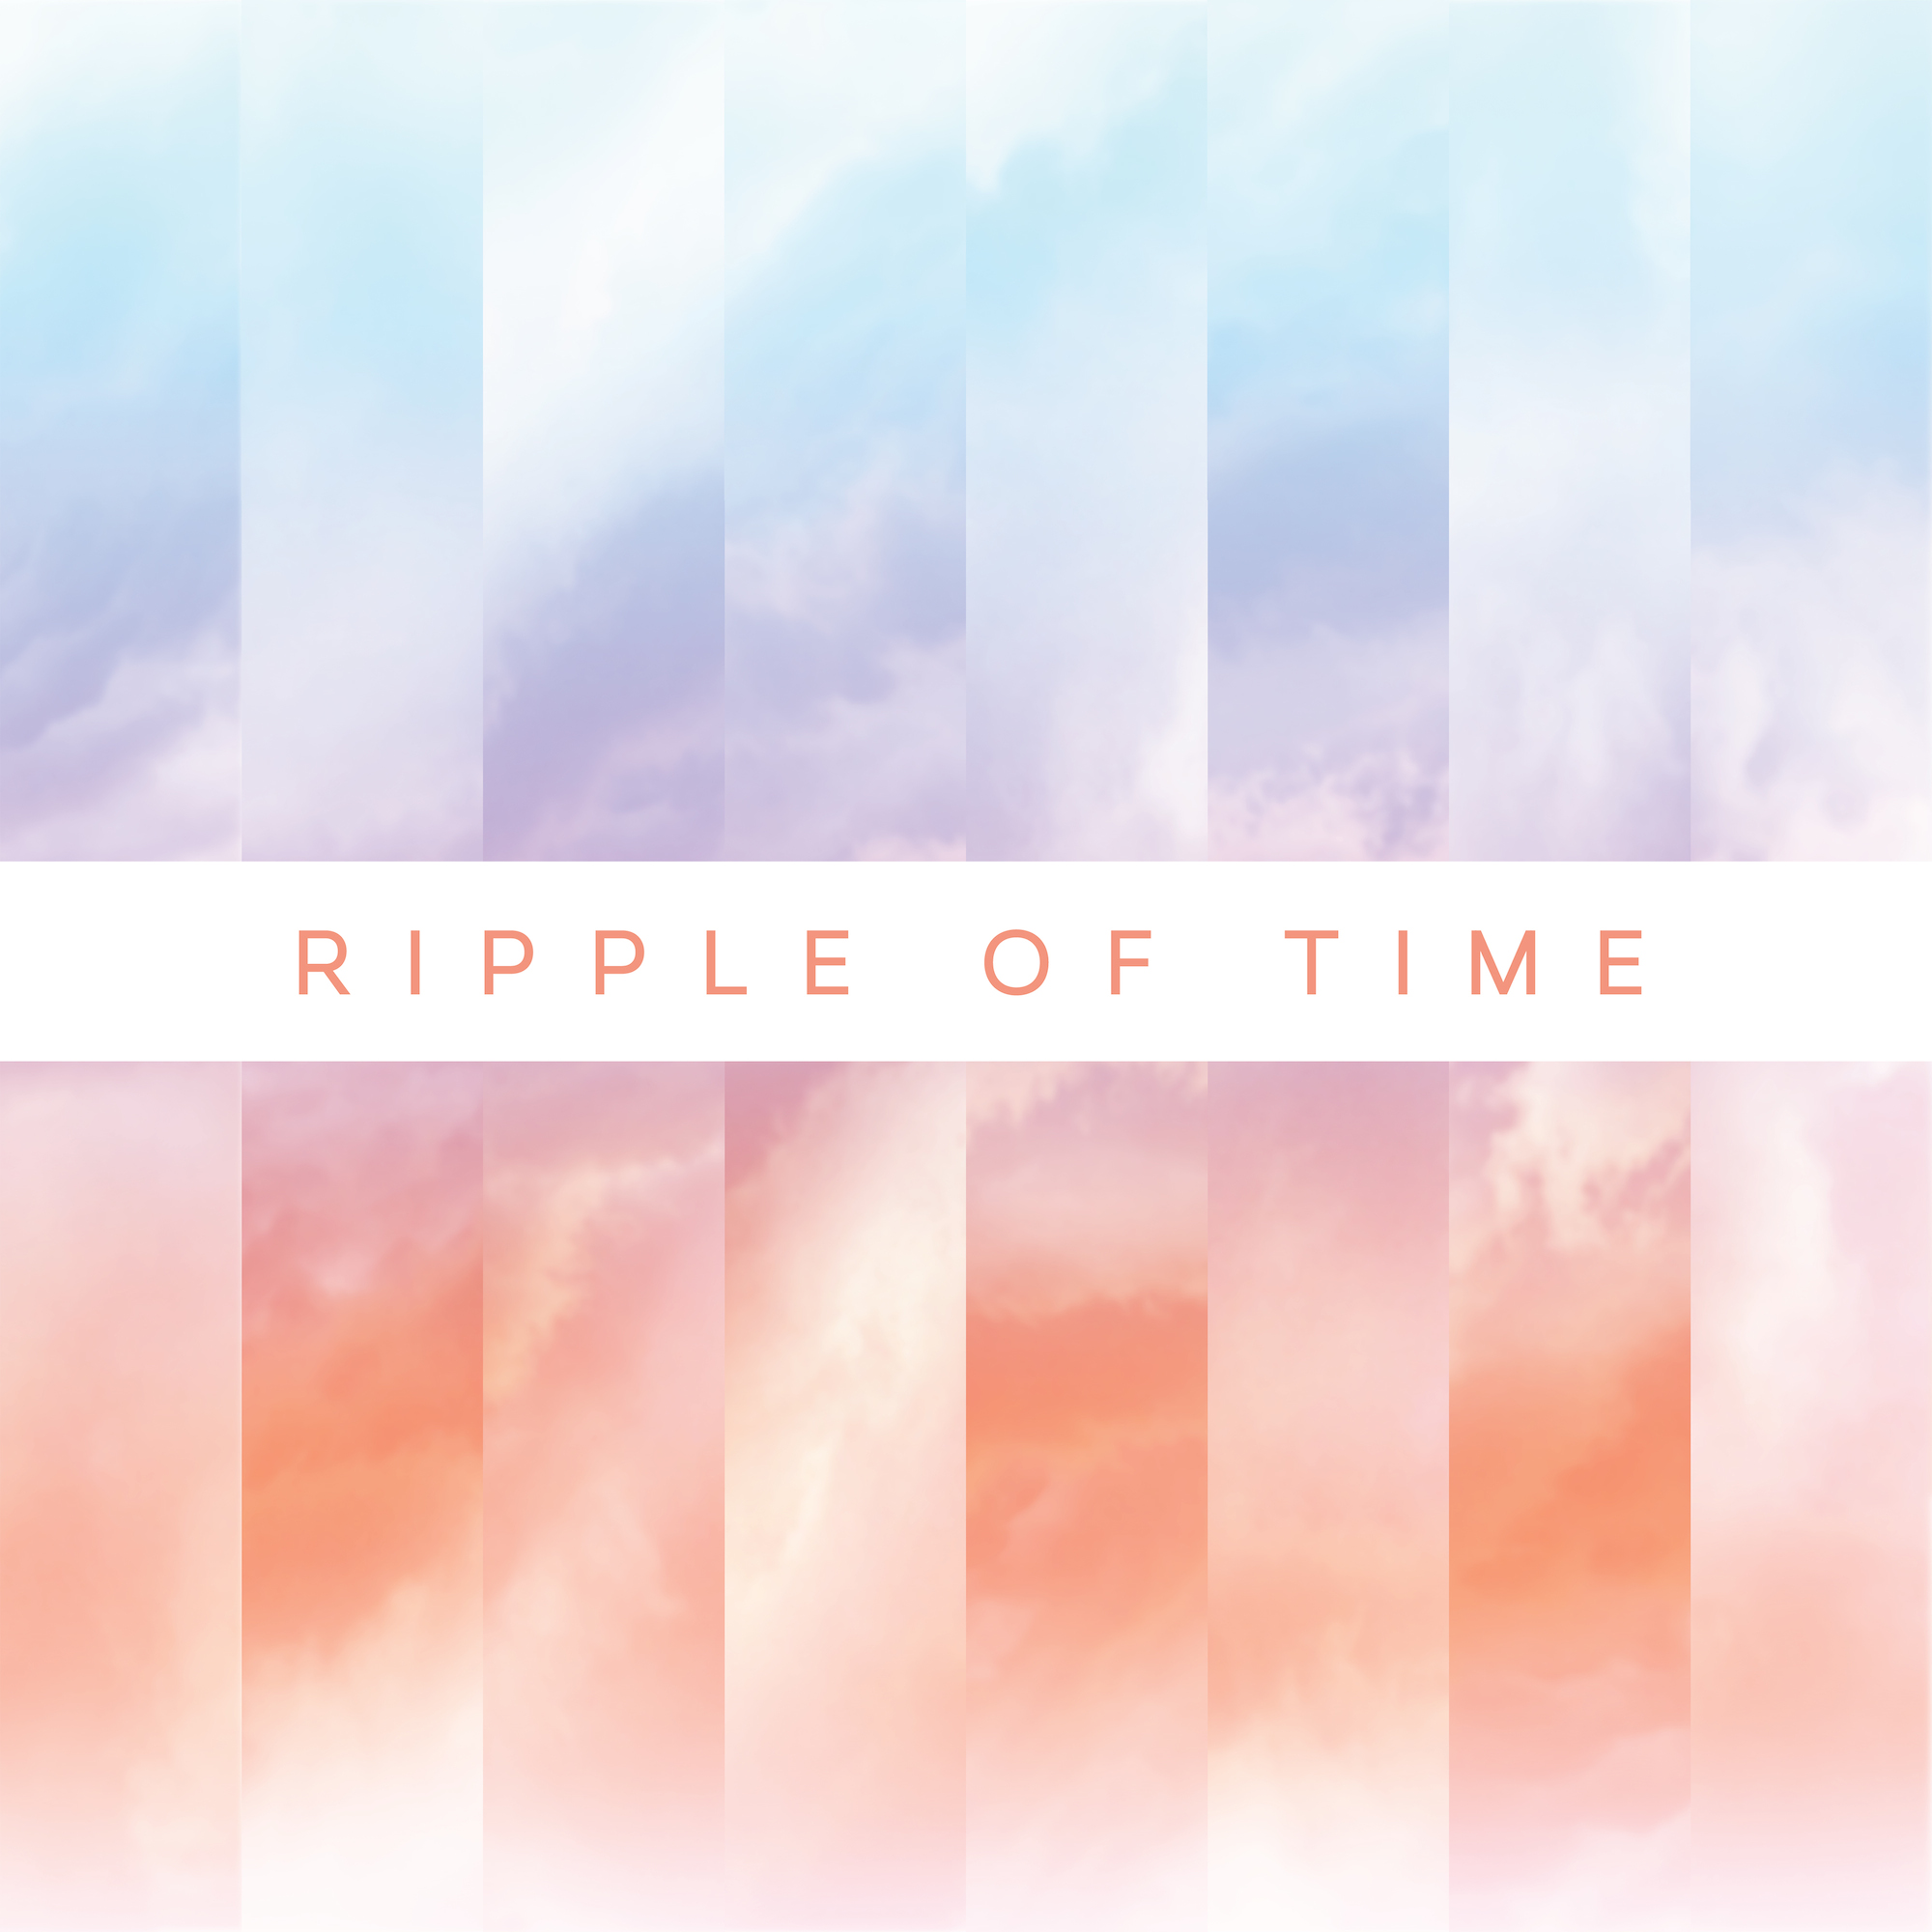 6. Ripple of Time 2000x2000.jpg